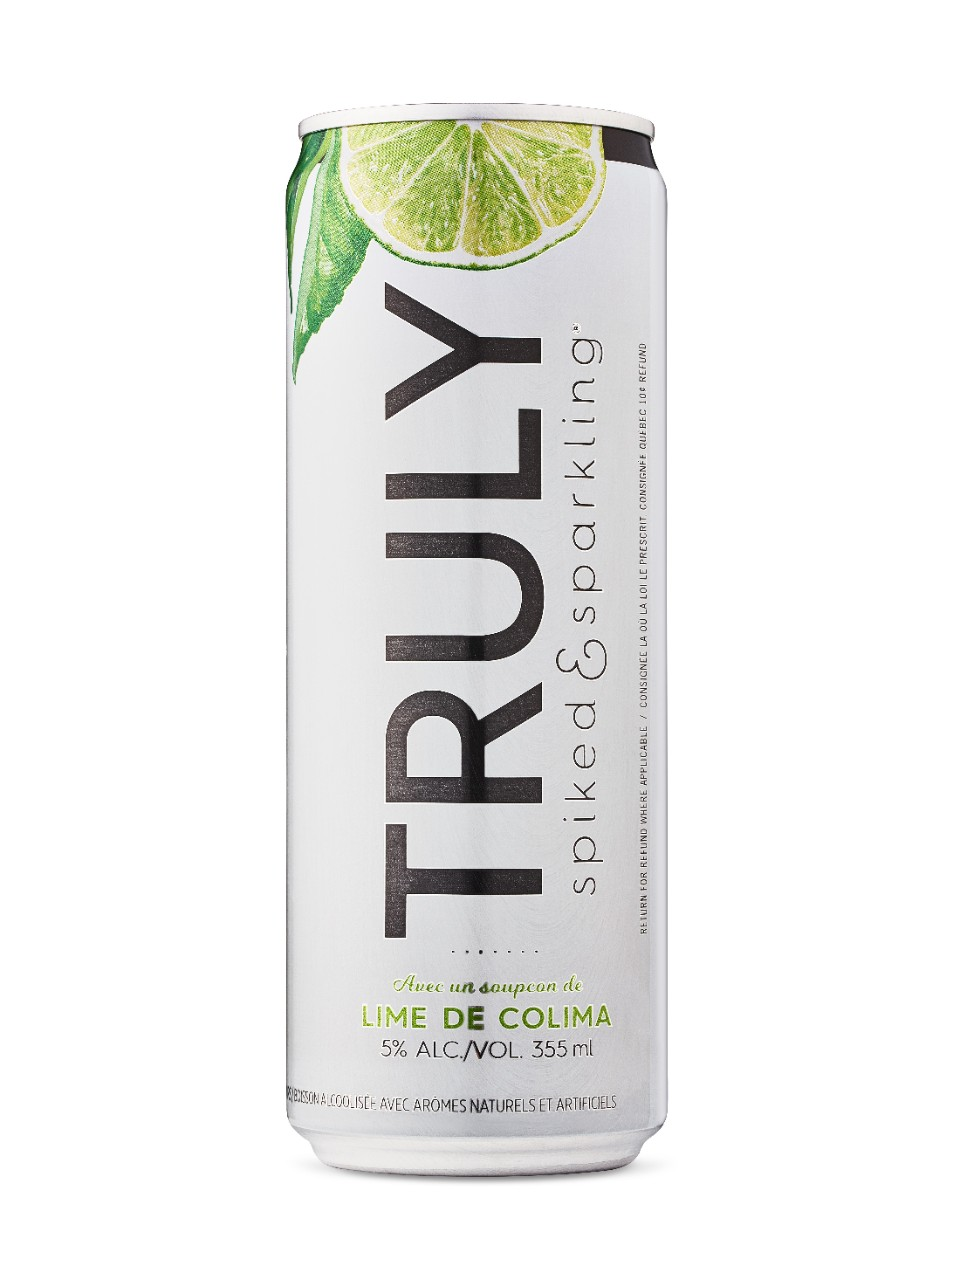 Image for Truly Spiked & Sparkling Water - Colima Lime from LCBO